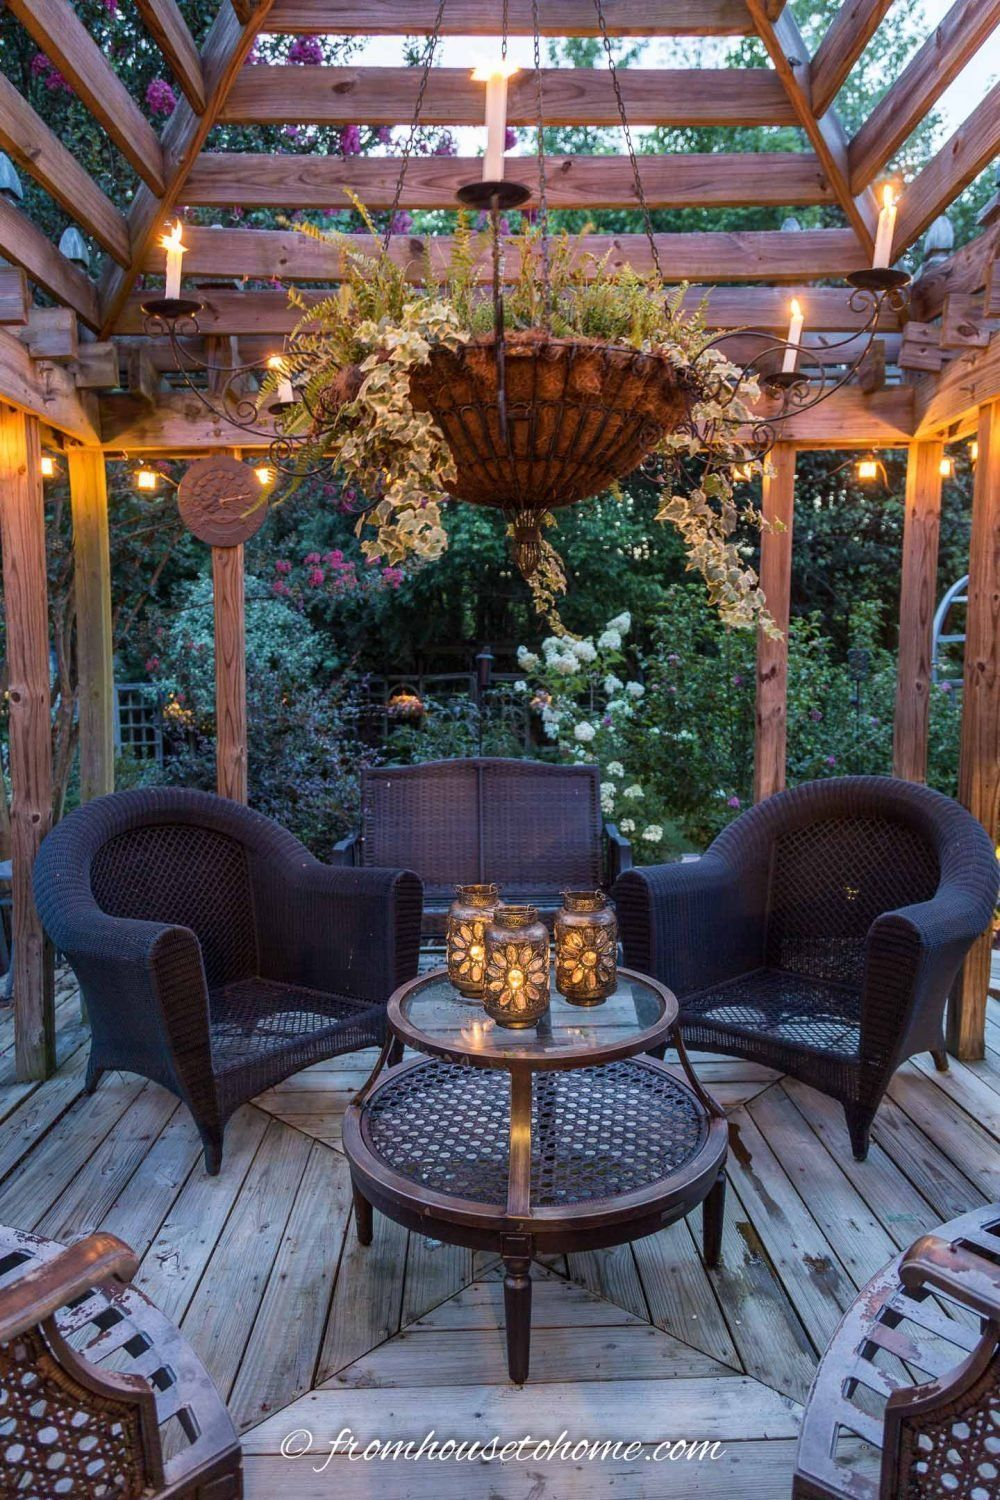 Outdoor Pergola Beleuchtungsideen Gartenarbeit Von Haus Zu Haus Garten Haus In 2020 Outdoor Pergola Pergola Lighting Outdoor Patio Lights